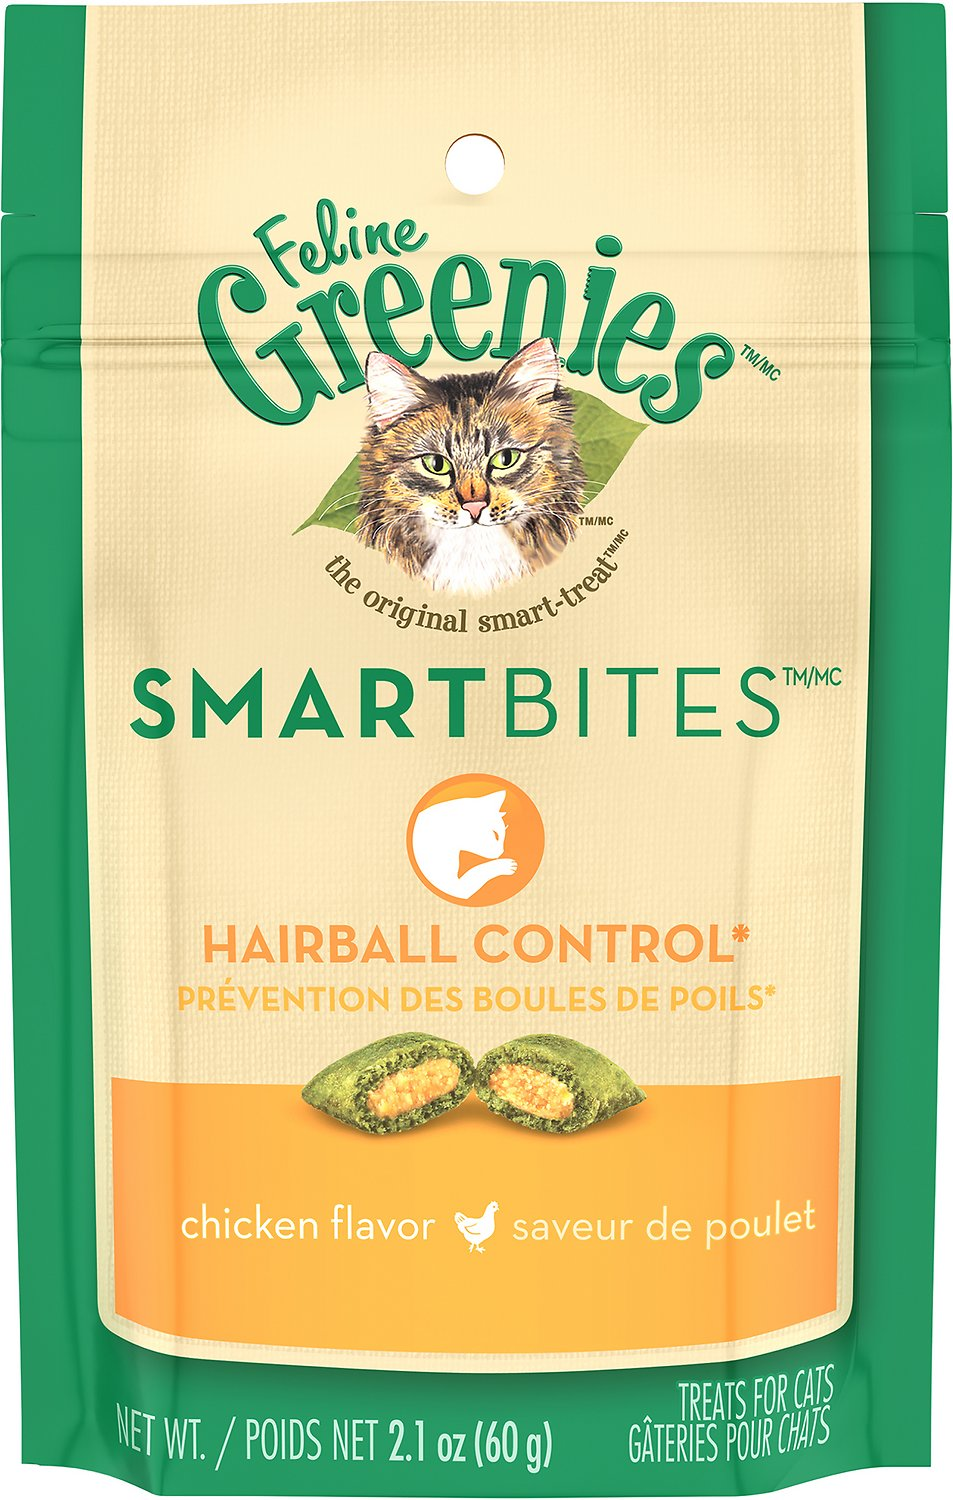 Feline Greenies SmartBites Hairball Control Chicken Flavor Cat Treats Image